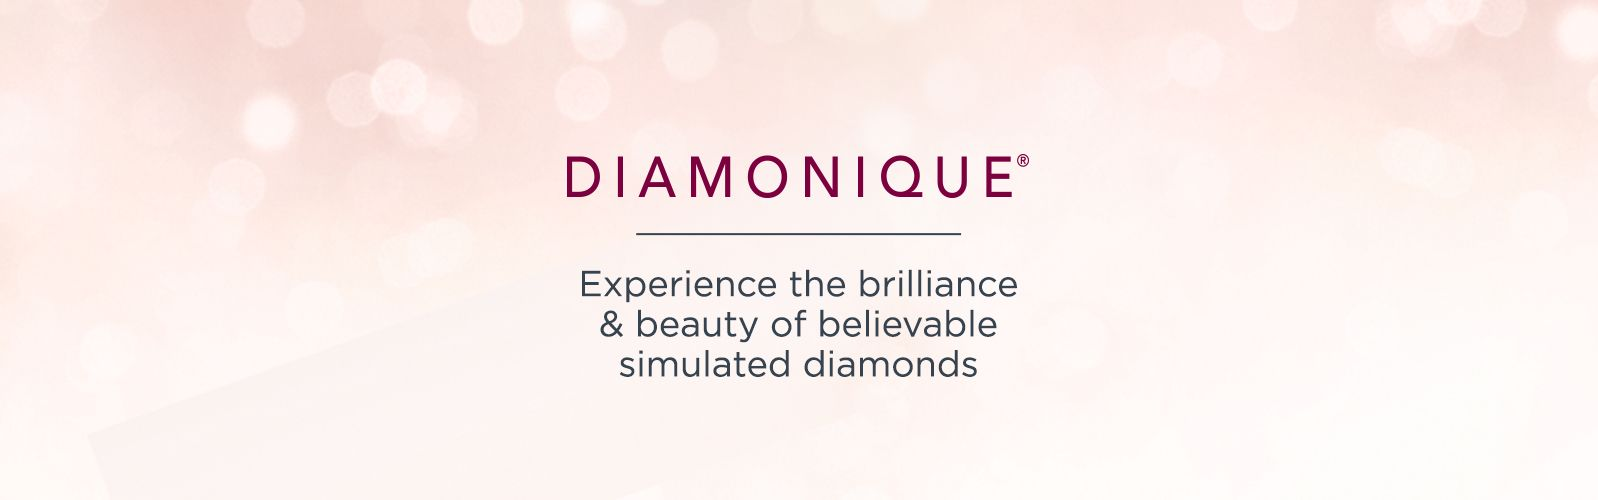 Diamonique. Experience the brilliance & beauty of believable simulated diamonds